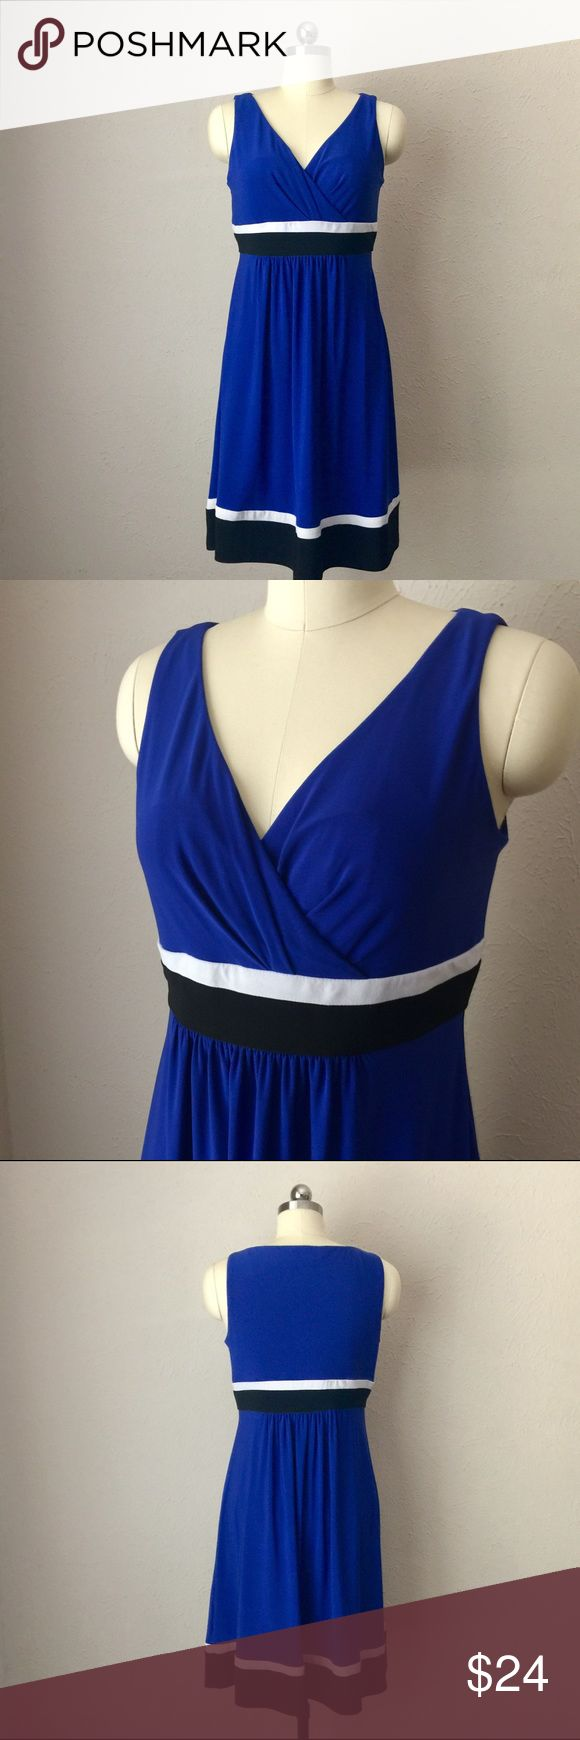 """CHAPS Ralph Lauren Colorblock Mixed-Media Dress Stylish, figure flattering knee-length dress from CHAPS line. Empire waist, sleeveless, Surplice v-neck. Mixed media blue with black and white stripes - polyester and elastane. Excellent condition! Length: 36""""  Bust: 17"""" flat across Chaps Dresses"""